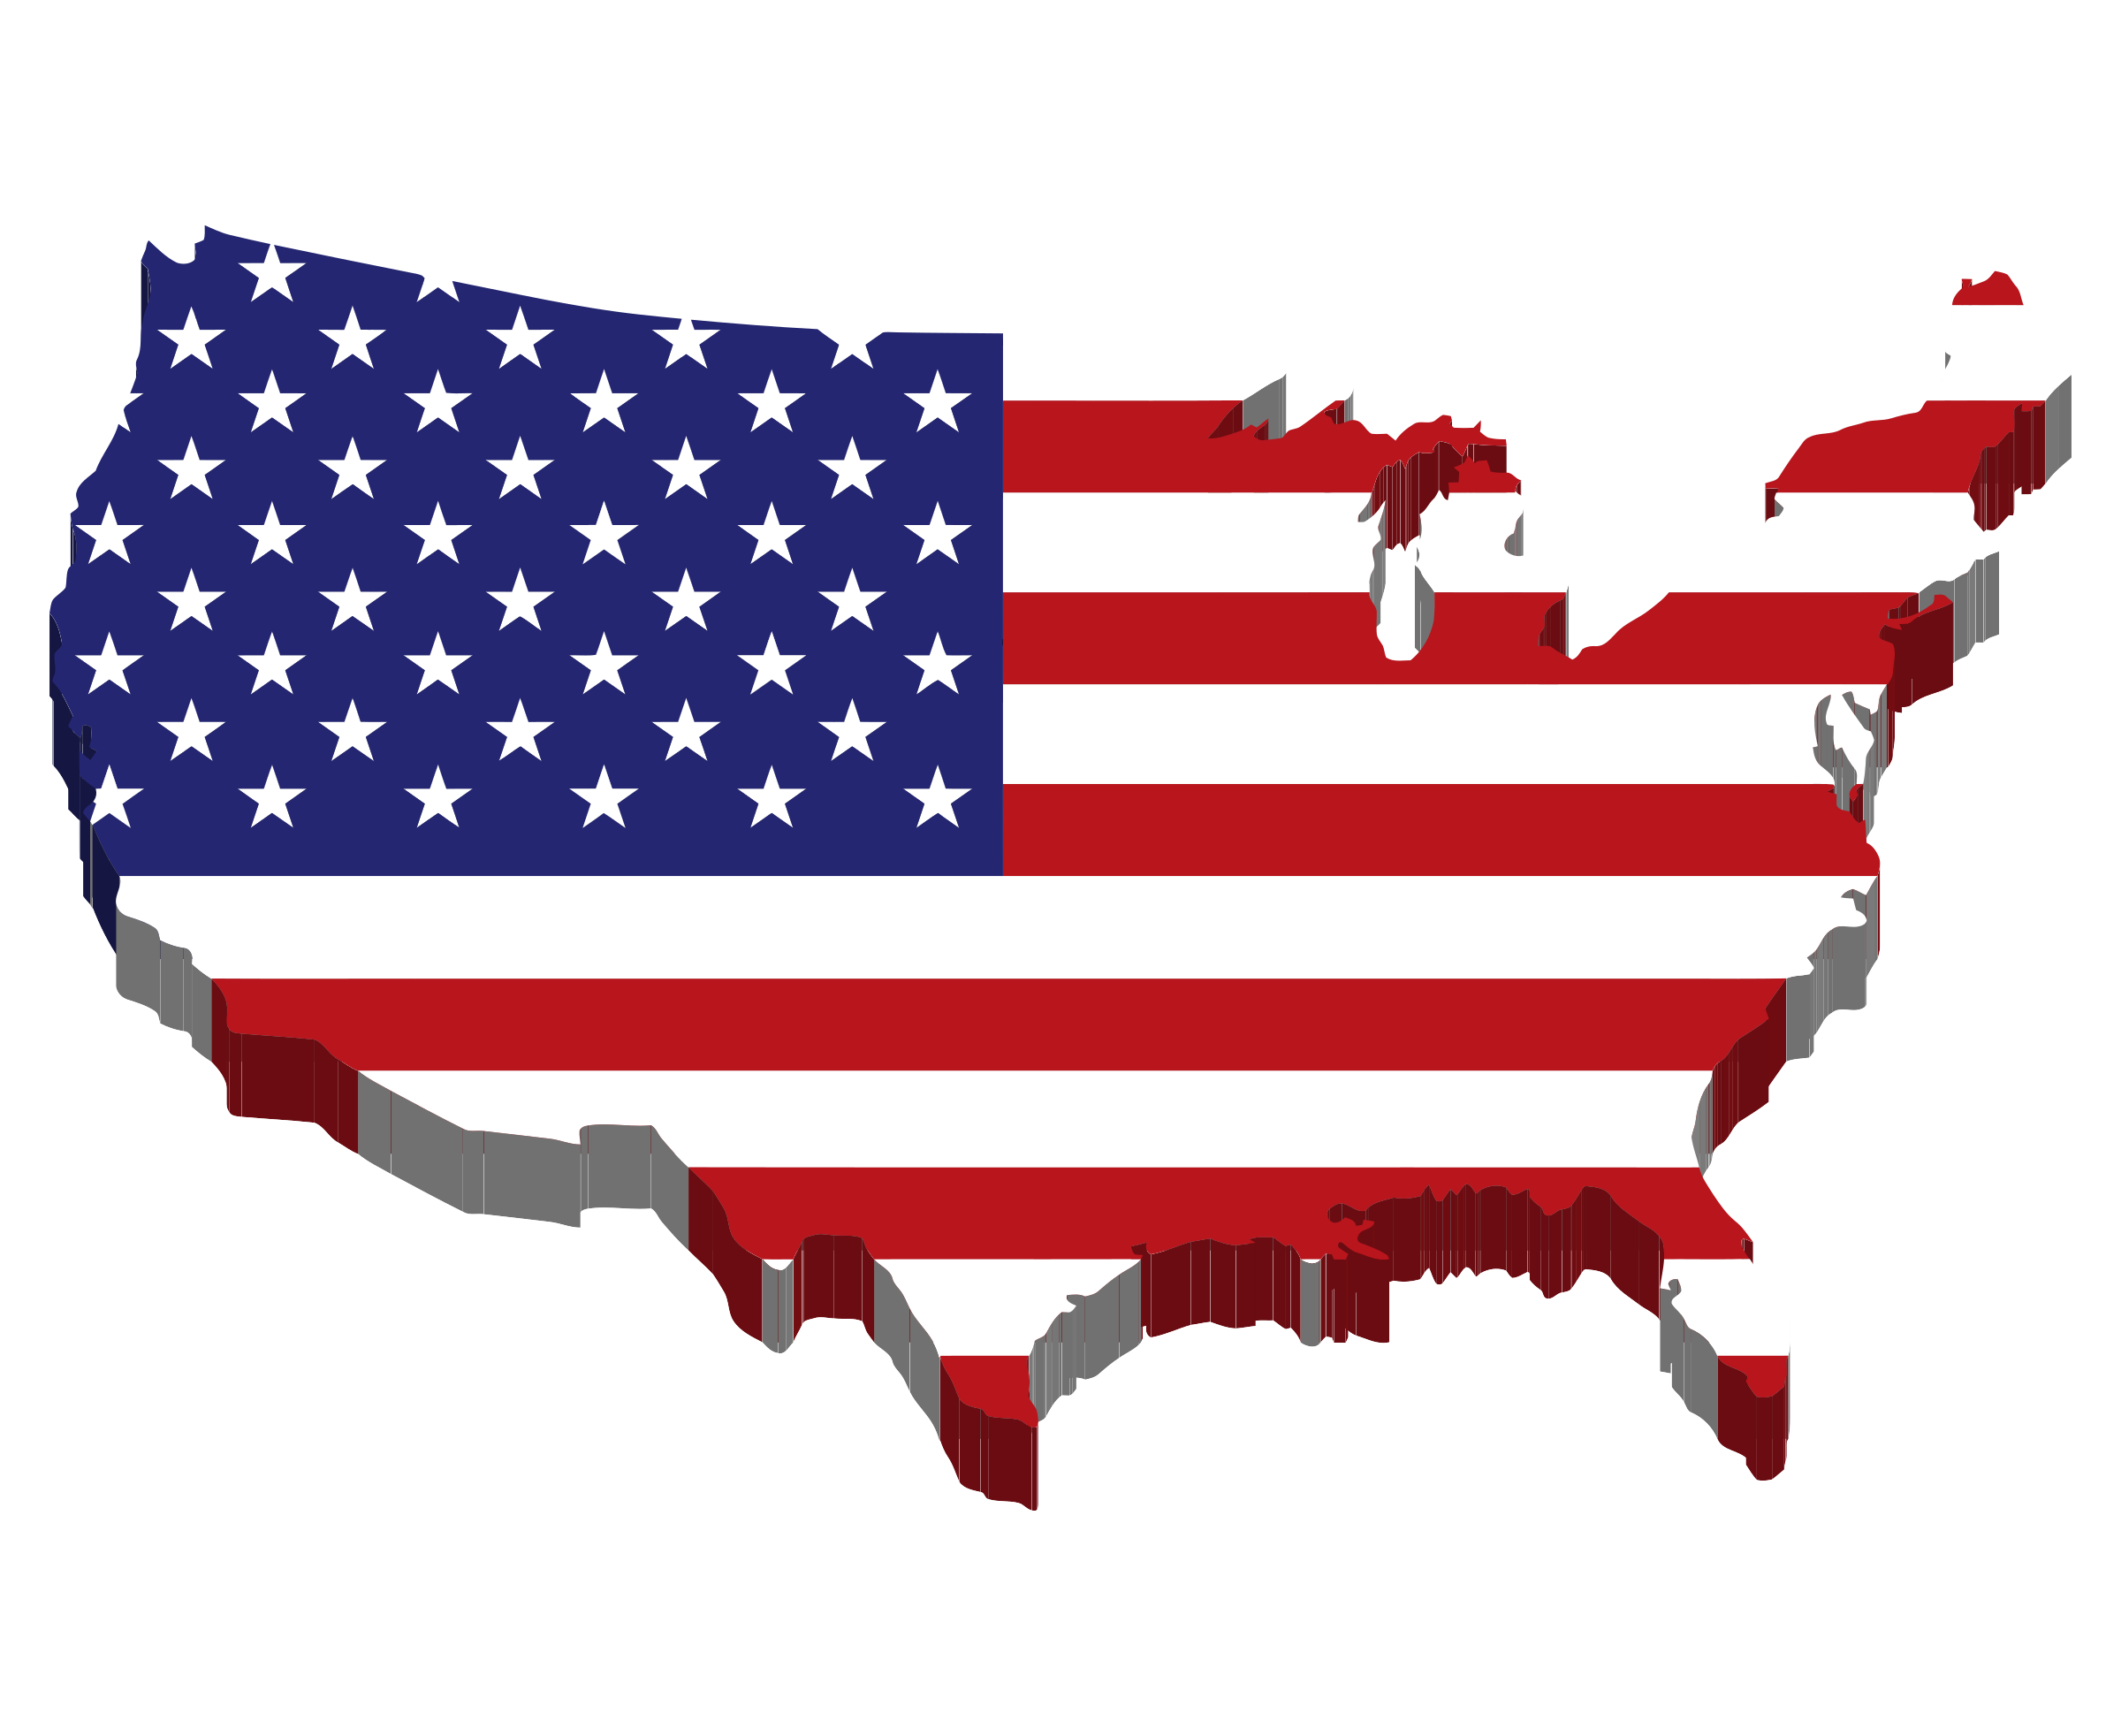 Us clipart transparent. United states of america